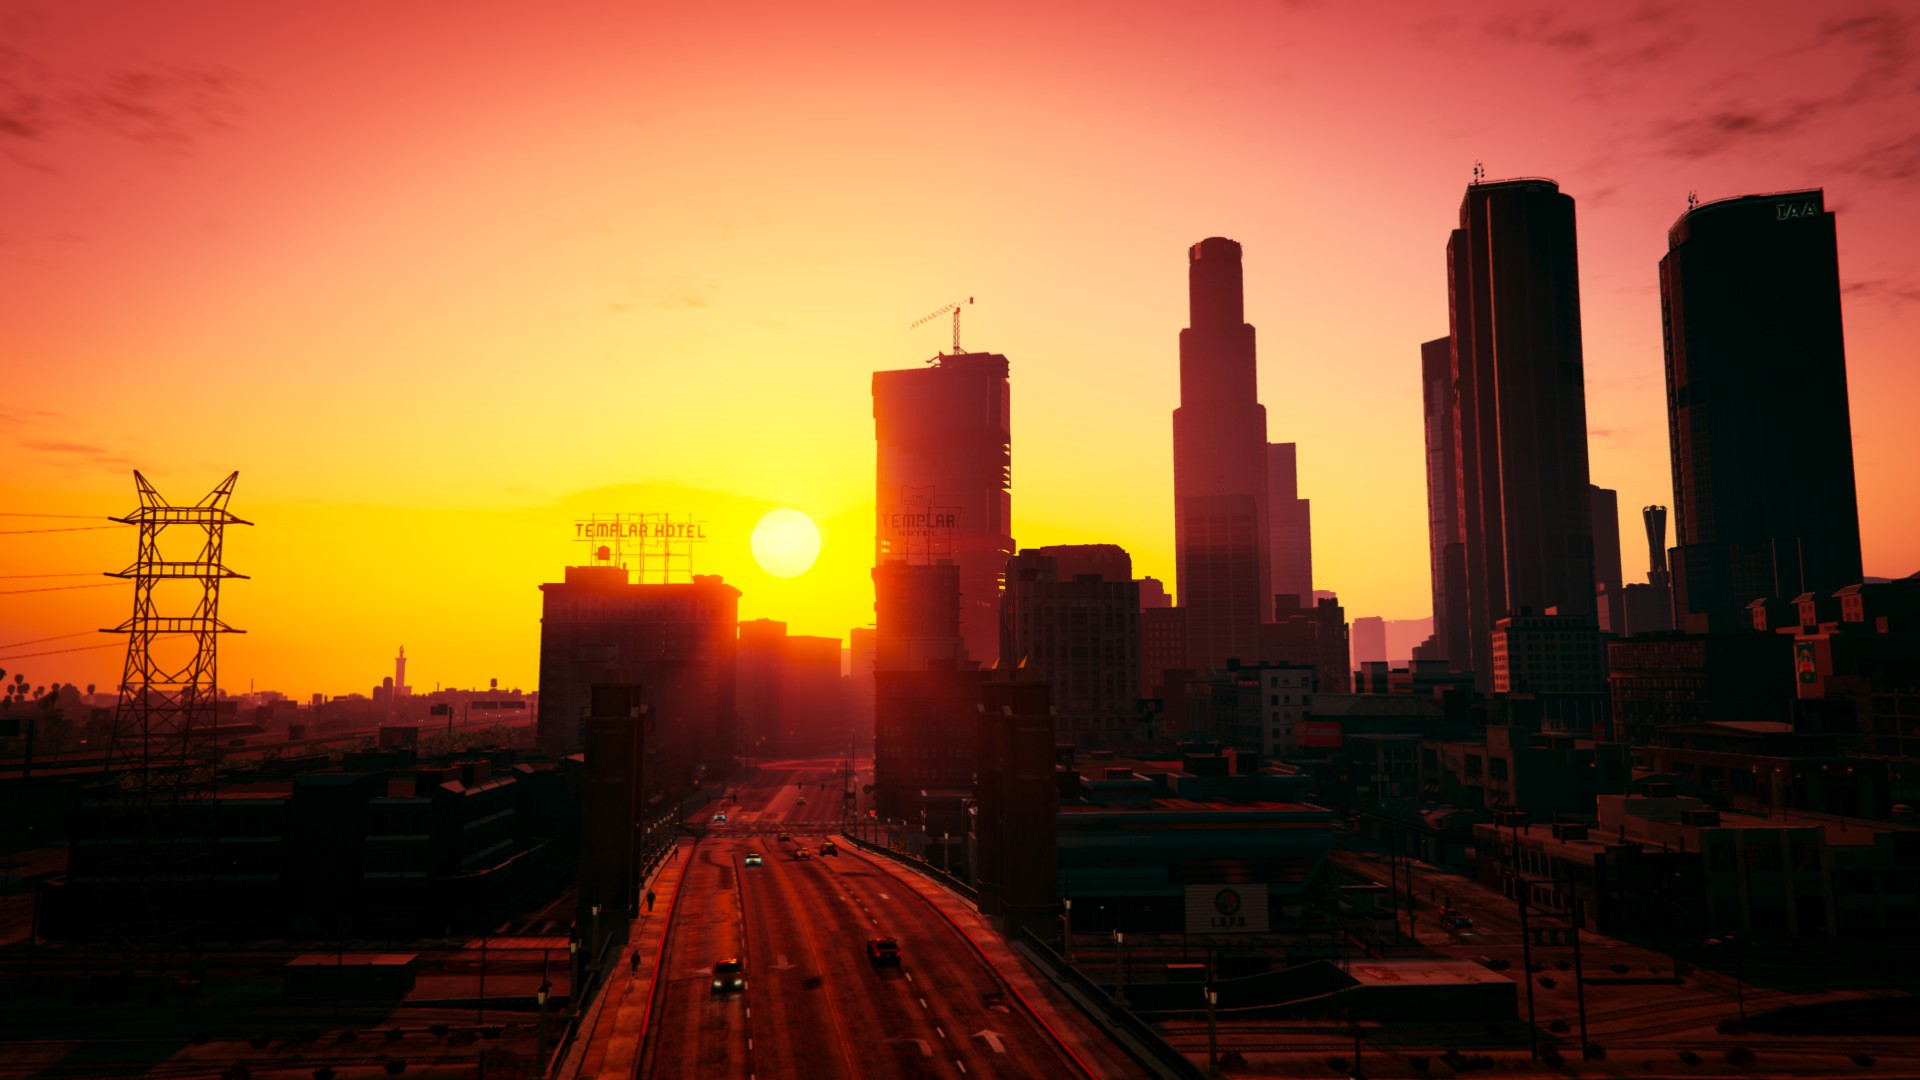 1920x1080 Hd Wallpaper Background Image: Grand Theft Auto V HD Wallpaper